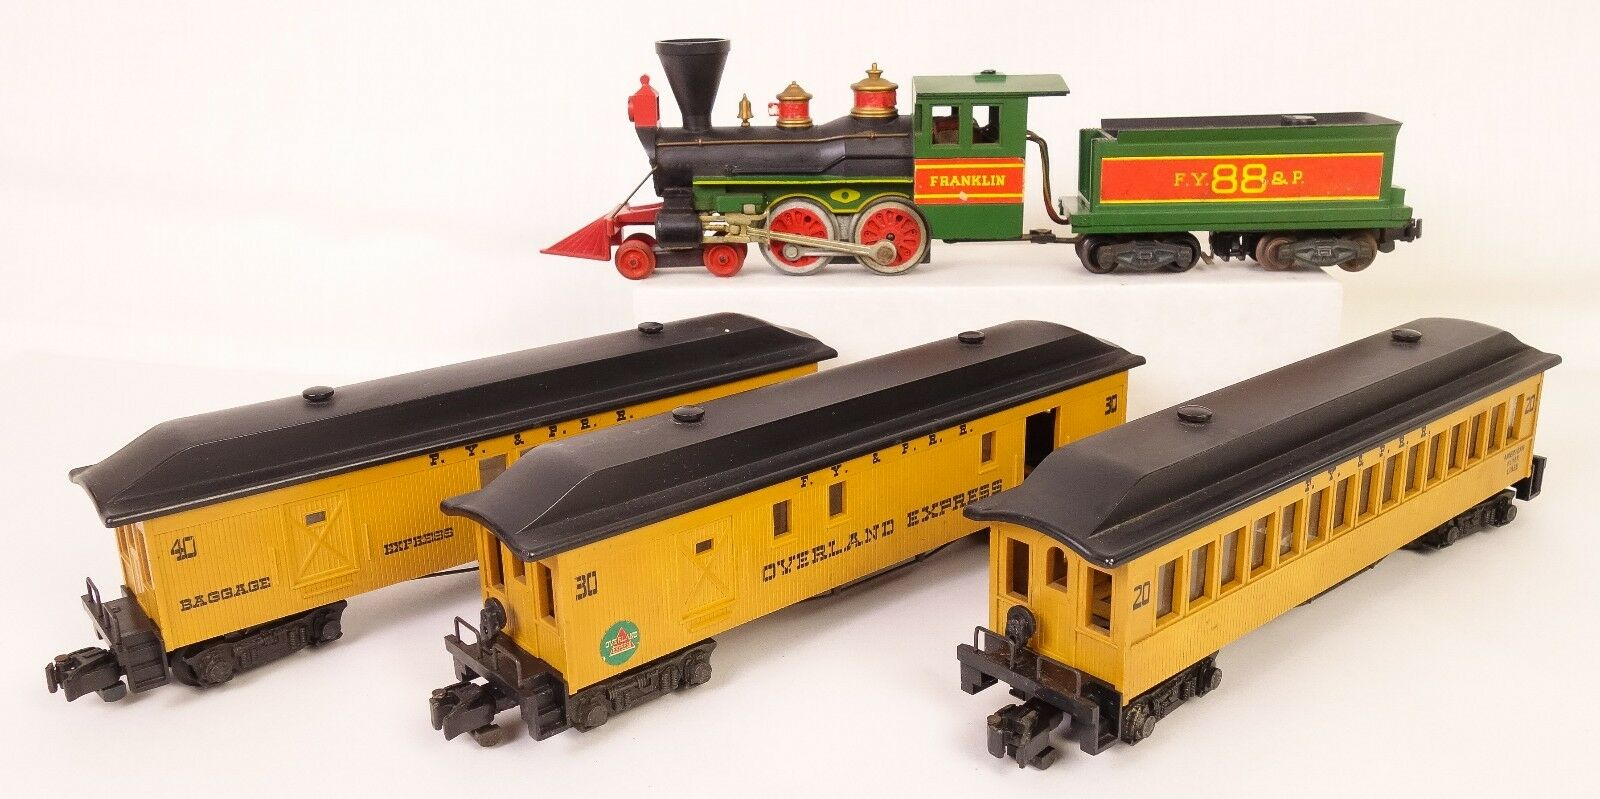 American Flyer Overland Express Set con Franklin 88 Loco-tender & Pass. coches